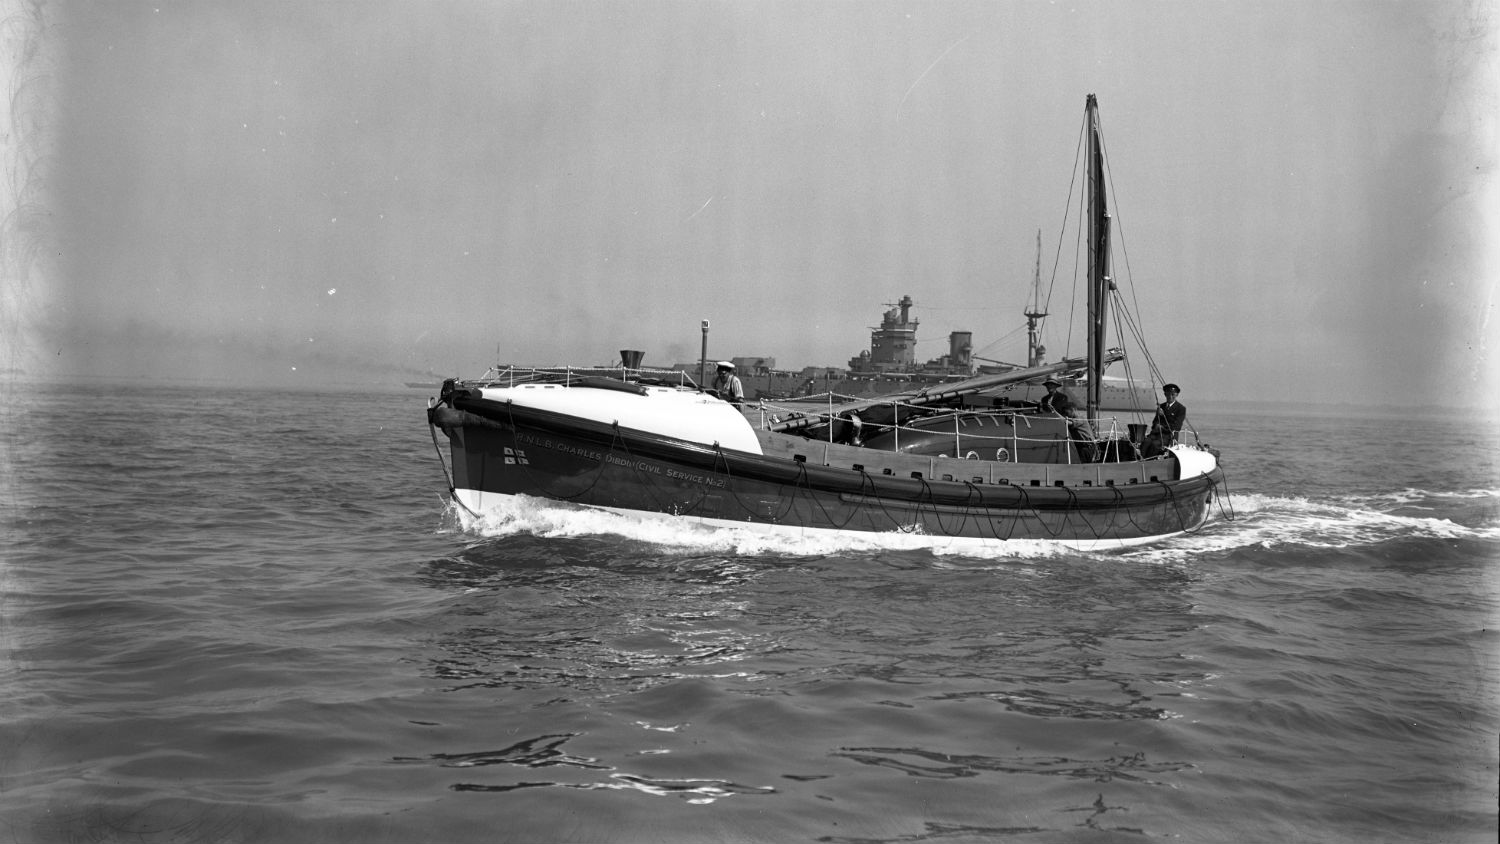 Black and white image of Walmer lifeboat, Charles Dibdin Civil Service No.2, while on trials